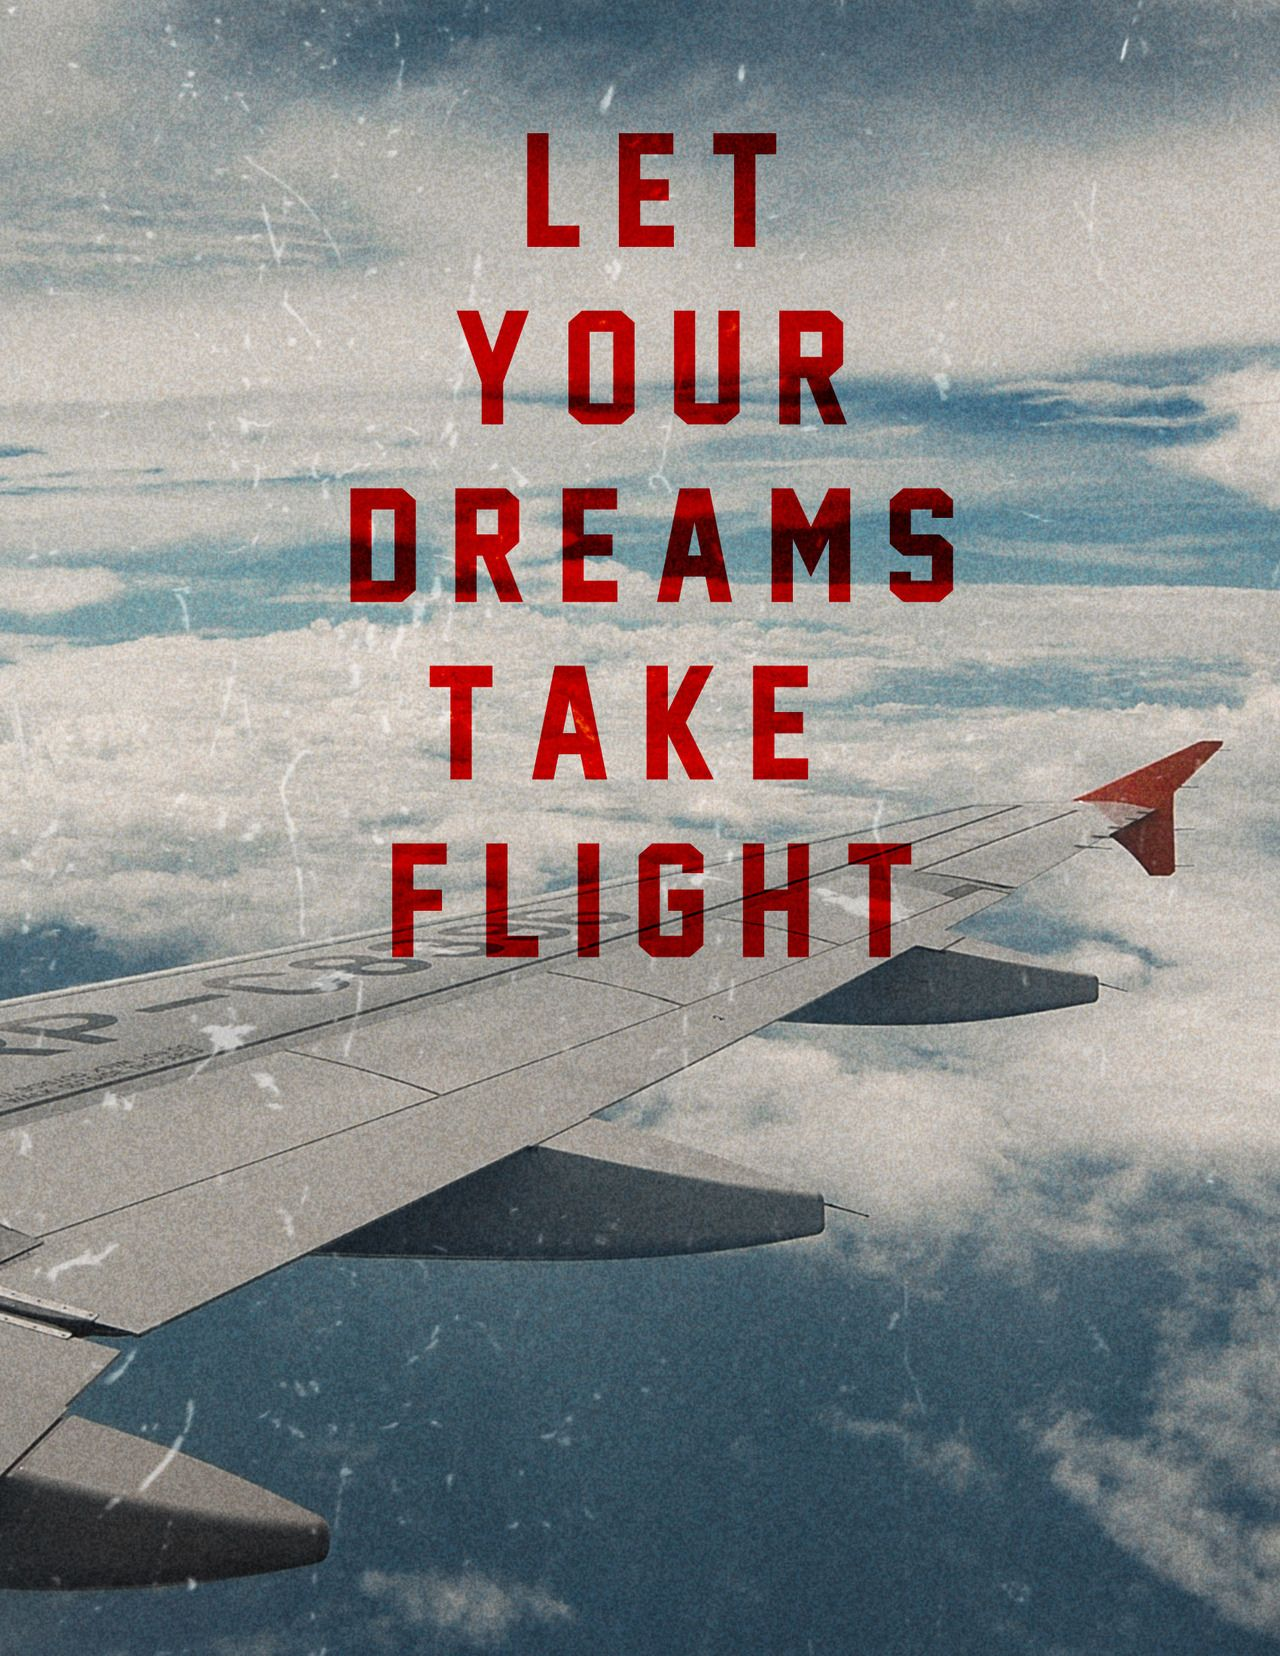 Flying Quotes Captivating Inspirational Quotes To Motivate And Share  Only Words